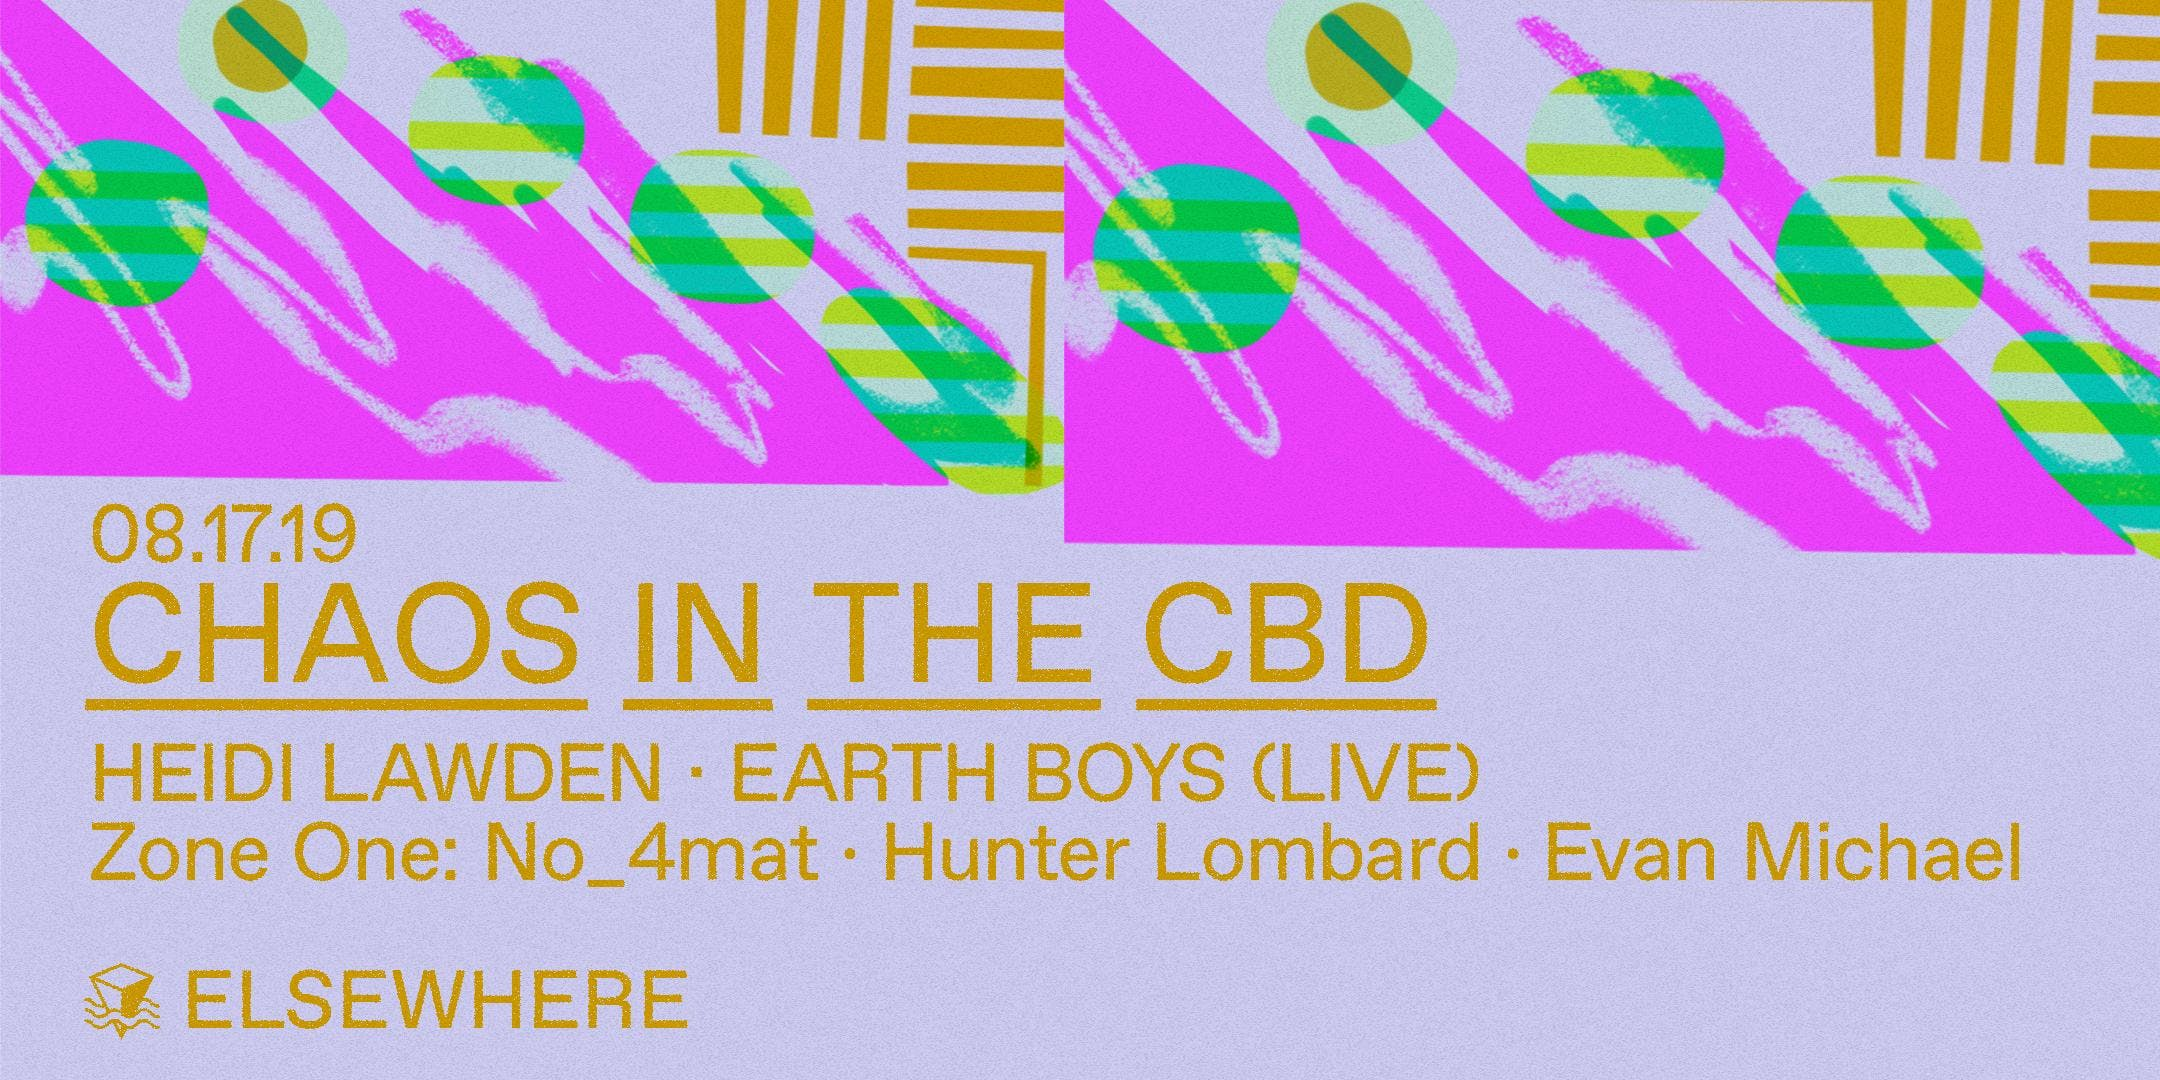 Chaos in the CBD, Heidi Lawden, Earth Boys (Live), No_4mat, Hunter Lombard, Evan Michael